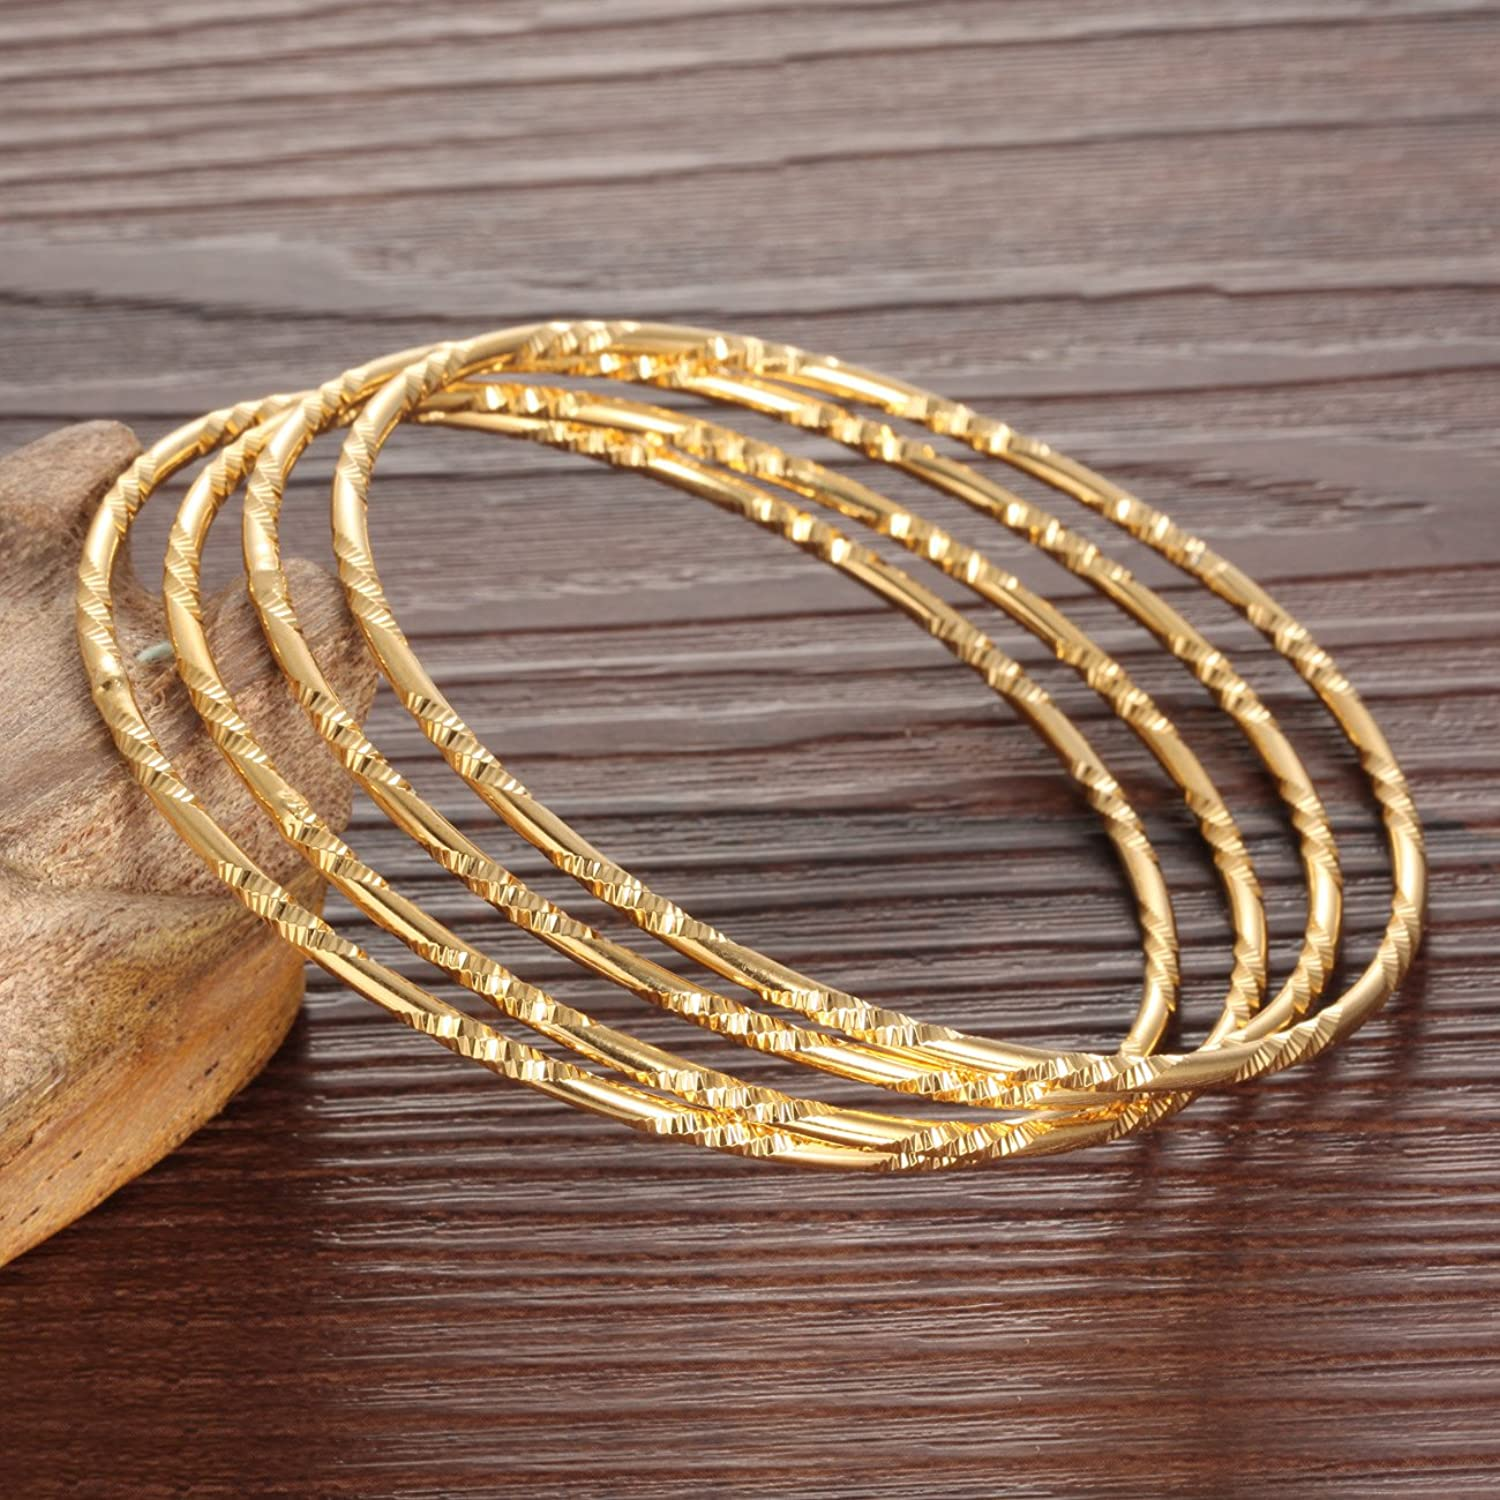 bangles s princess gold roberto bracelets metallic coin jewelry for lyst women yellow bangle bracelet diamond